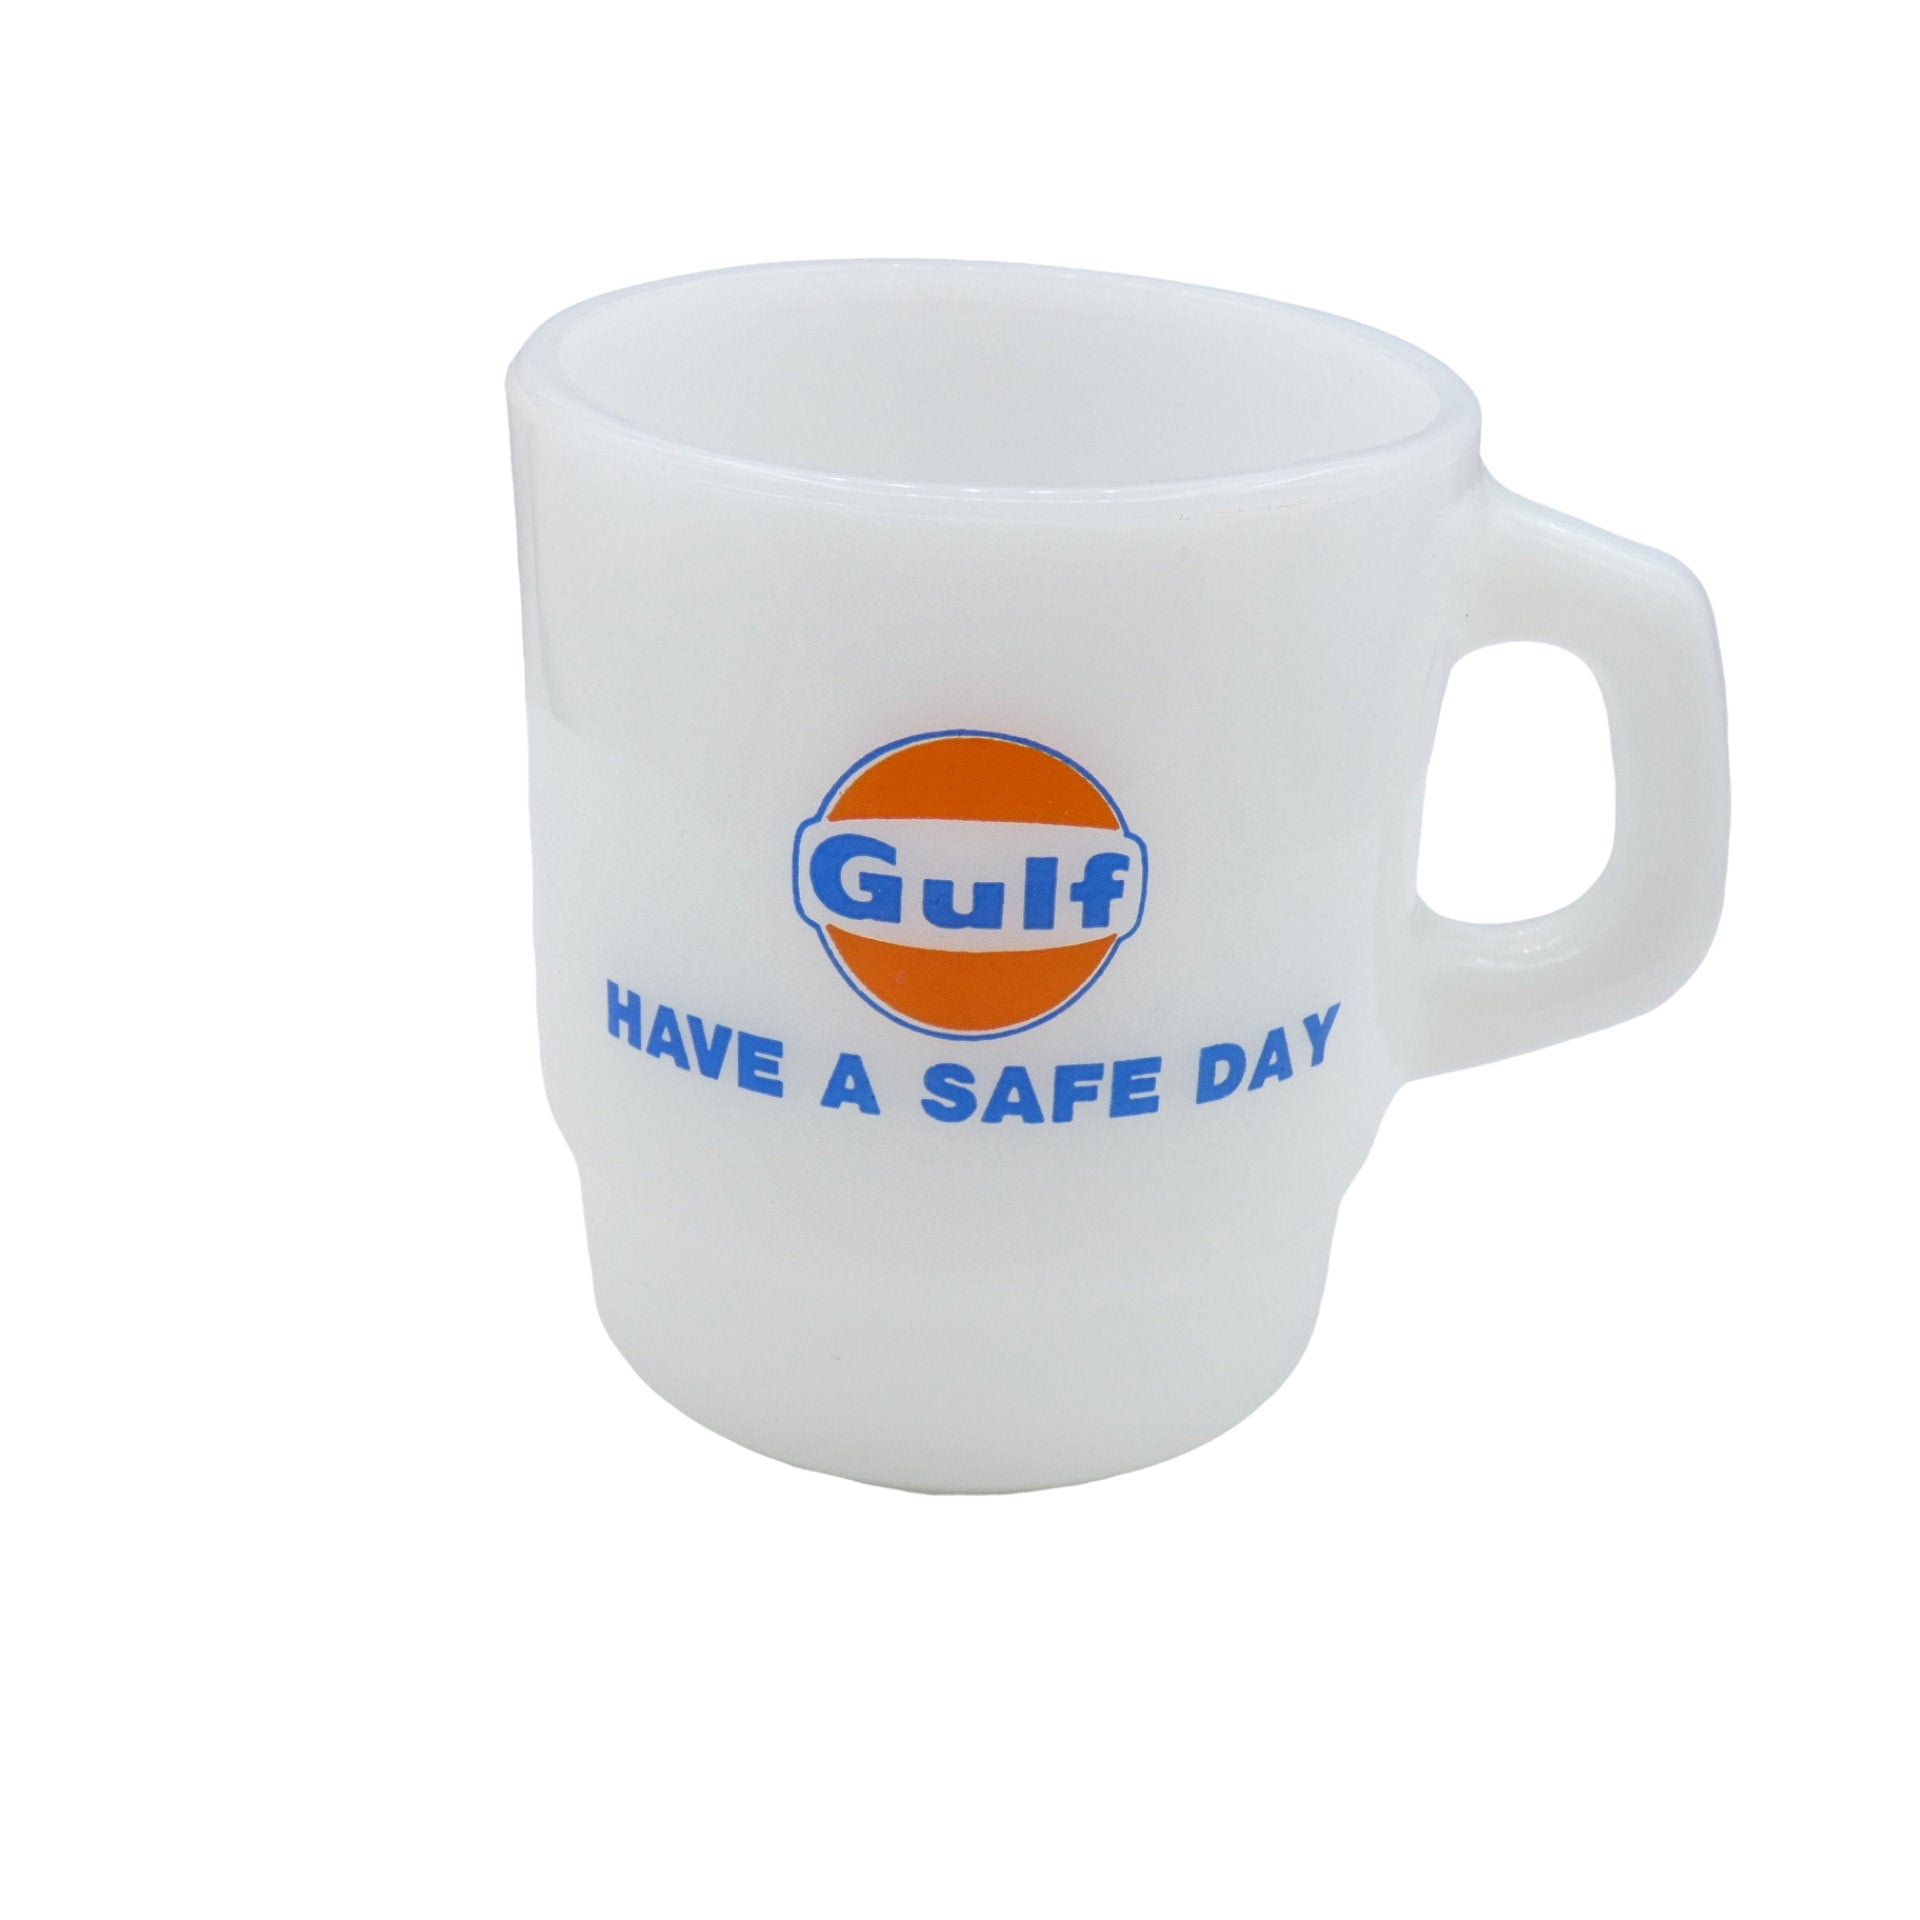 Vintage Petroleum Advertising - Gulf Oil Coffee Mug